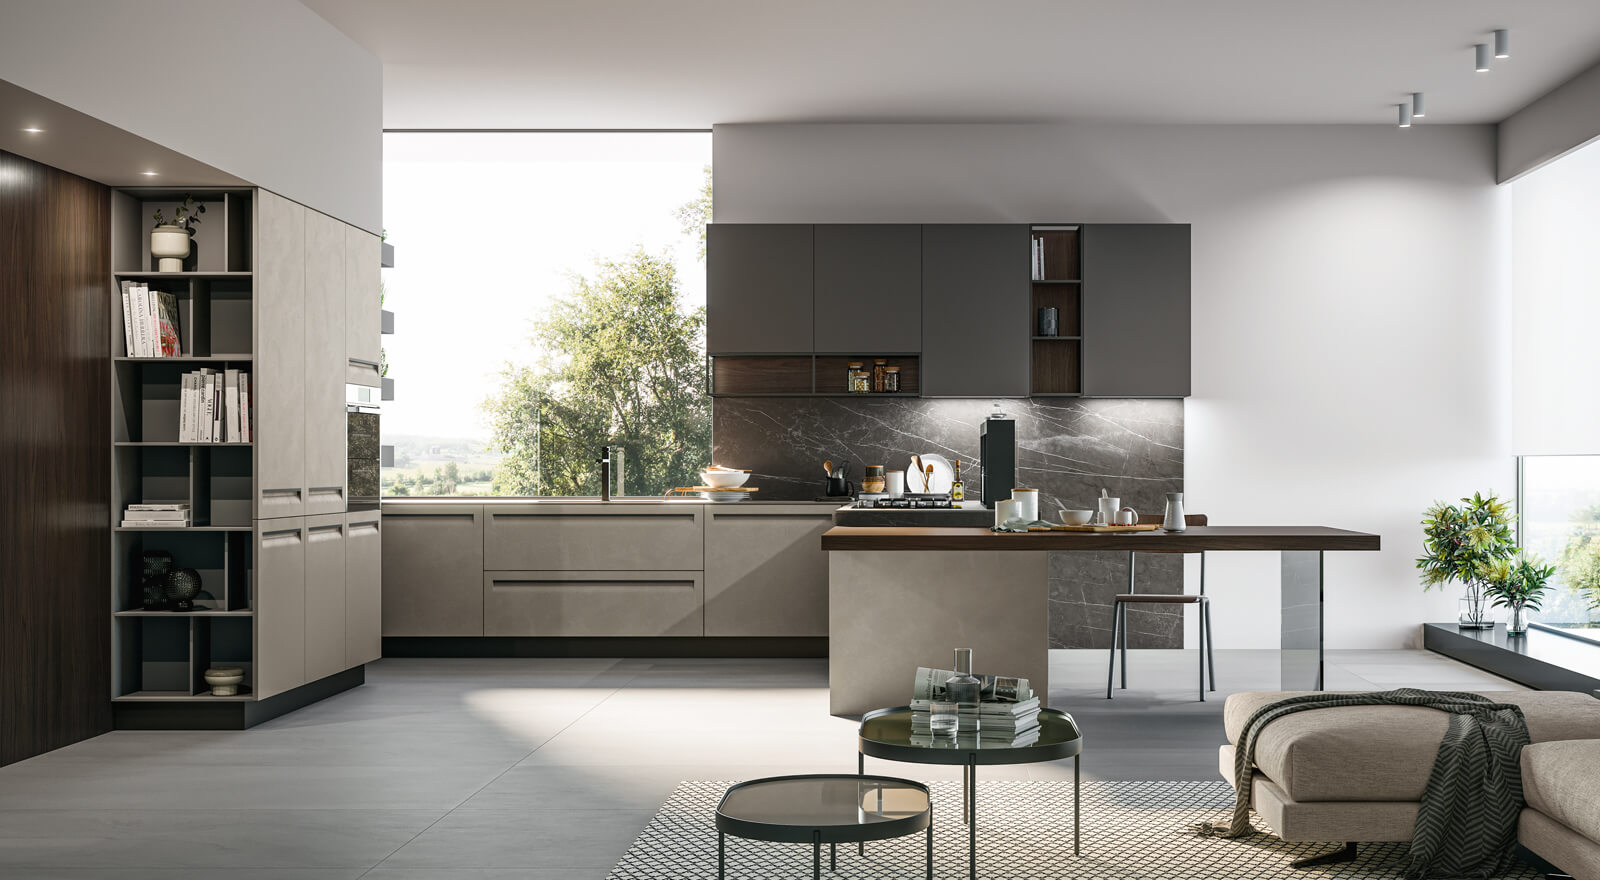 Cucina Open Space Moderna arredo3 kitchens - modern and classic kitchens made in italy